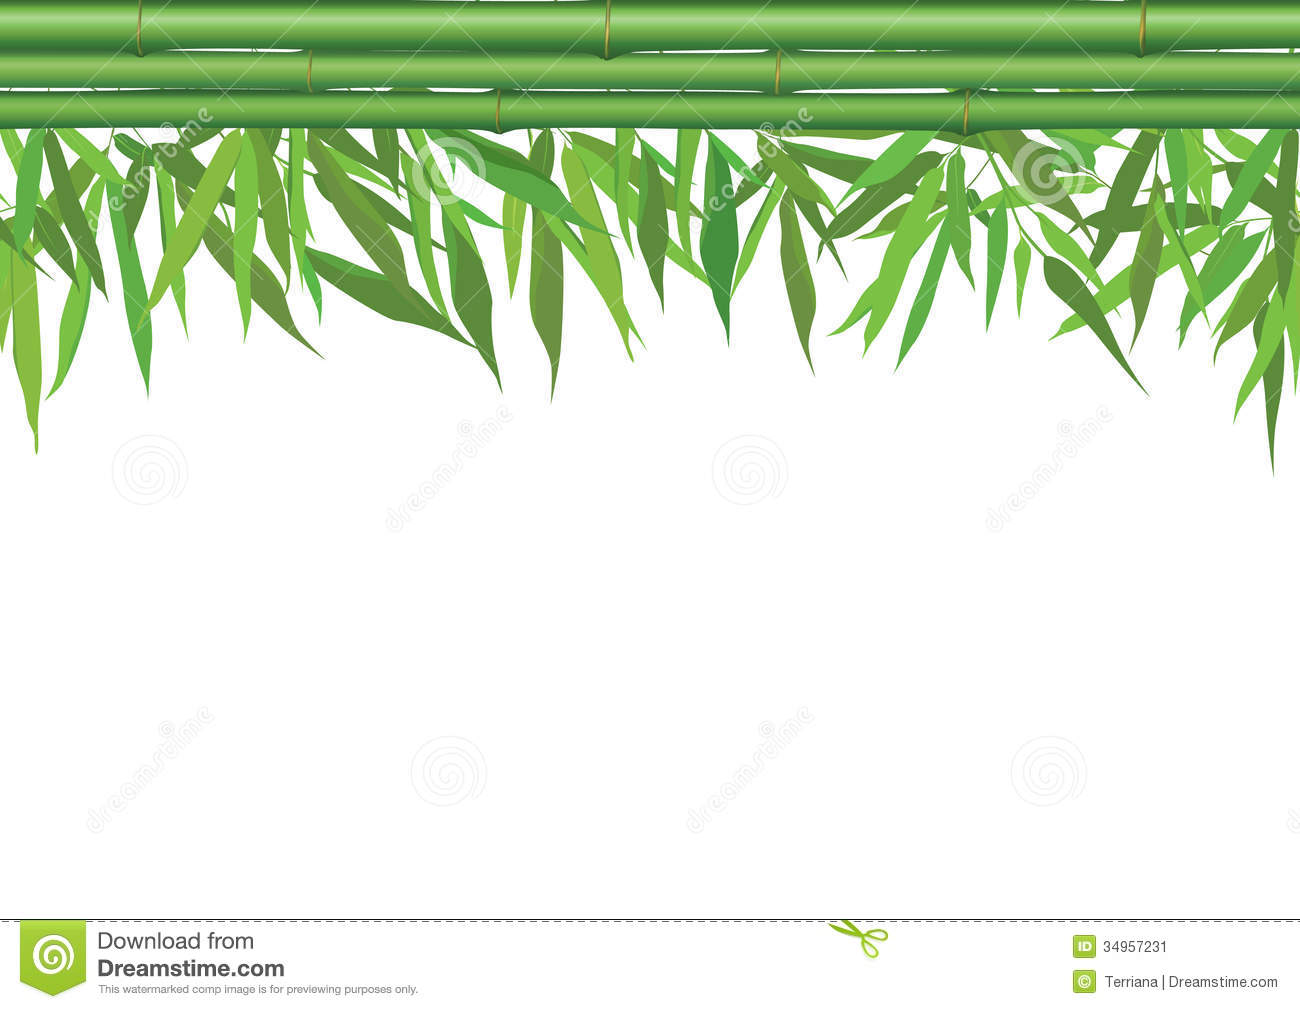 Floral Seamless Border With Bamboo Leaves, Stem And Copy Space Stock Image - Image: 34957231